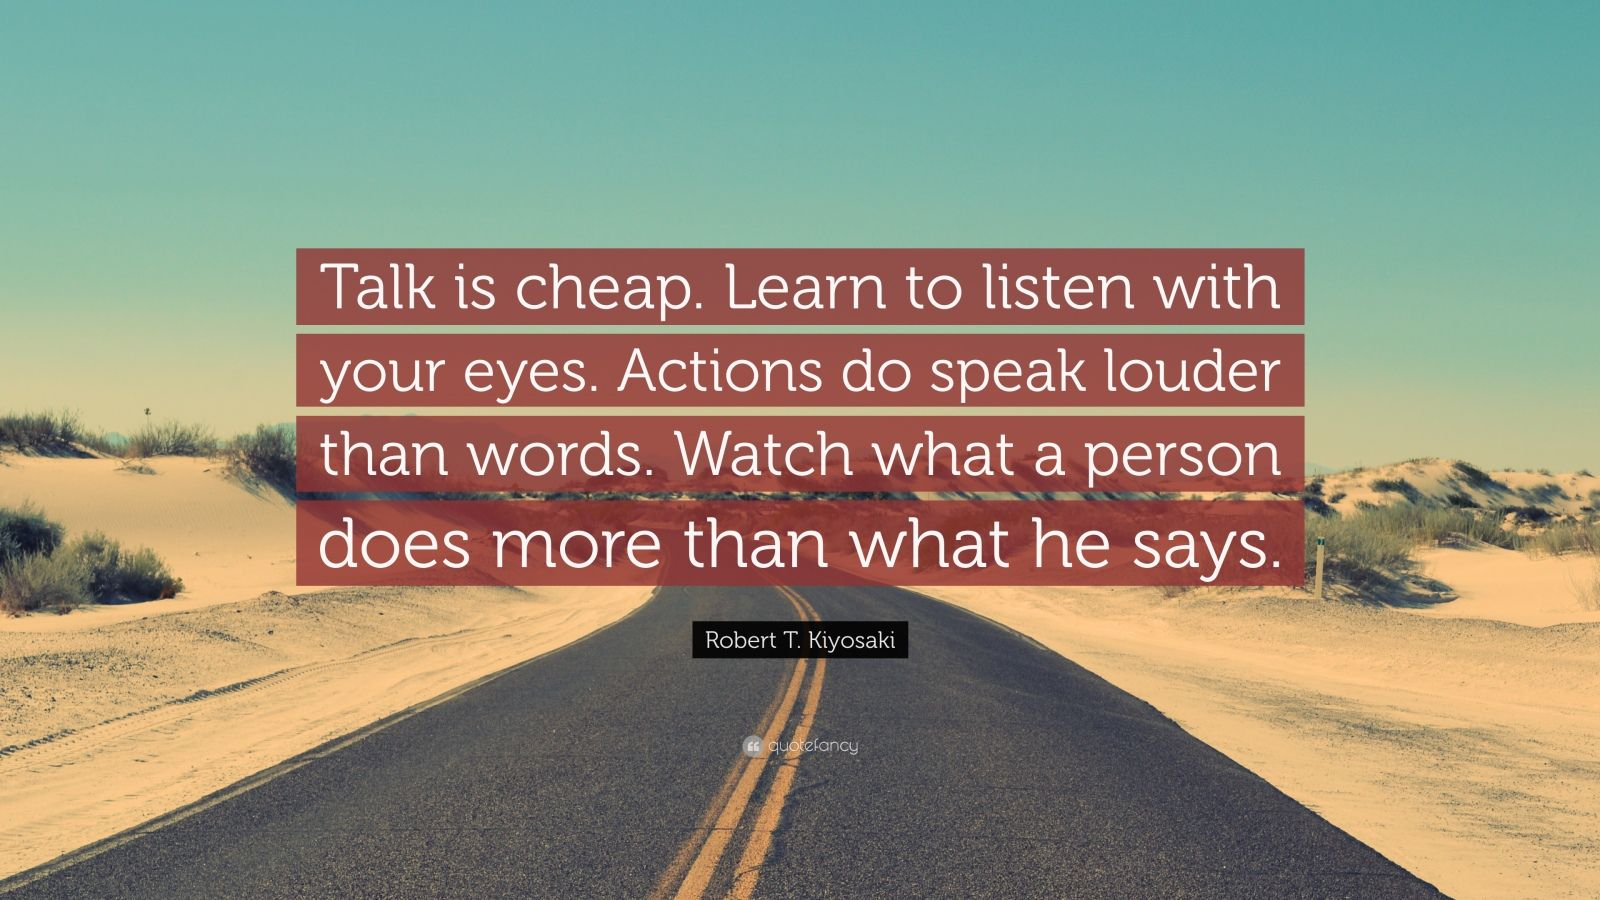 """Robert T. Kiyosaki Quote: """"Talk is cheap. Learn to listen with your eyes. Actions do speak louder than words. Watch what a person does more than what he says."""""""